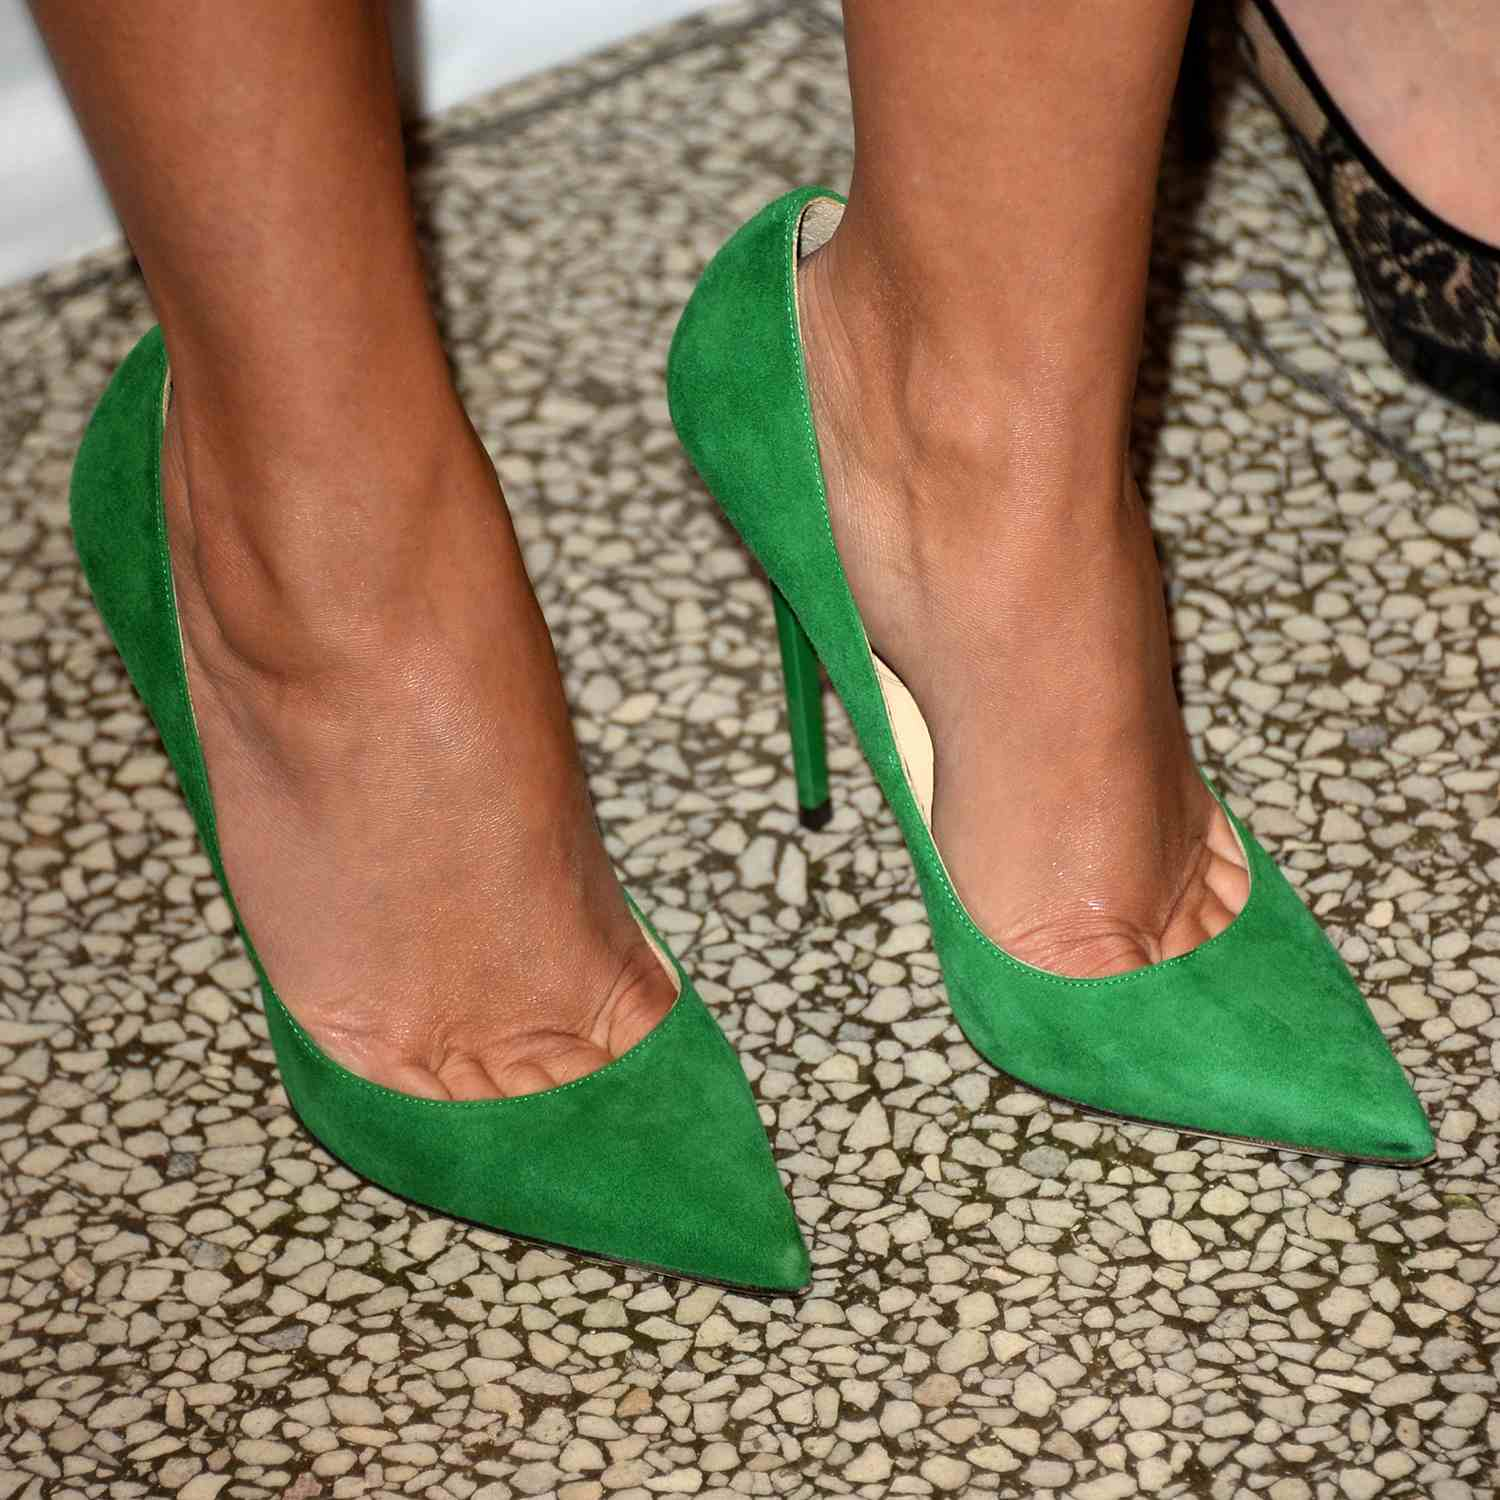 Best Shoe Colors To Wear With Navy Blue